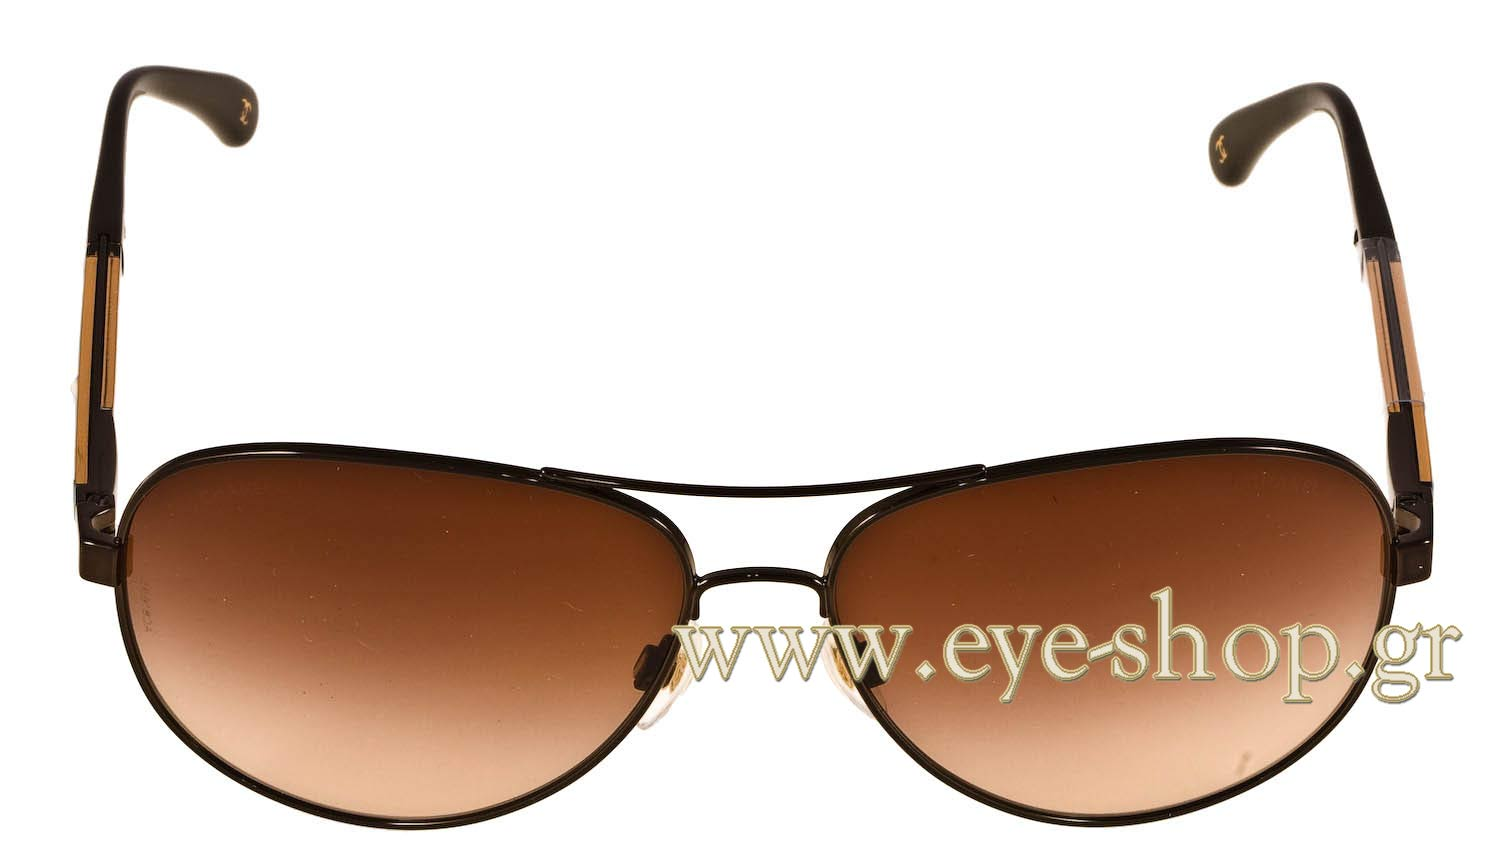 0 chanel 4179 c4173b col 60 women 2018 eyeshop ver1 for Chanel collection miroir 4179